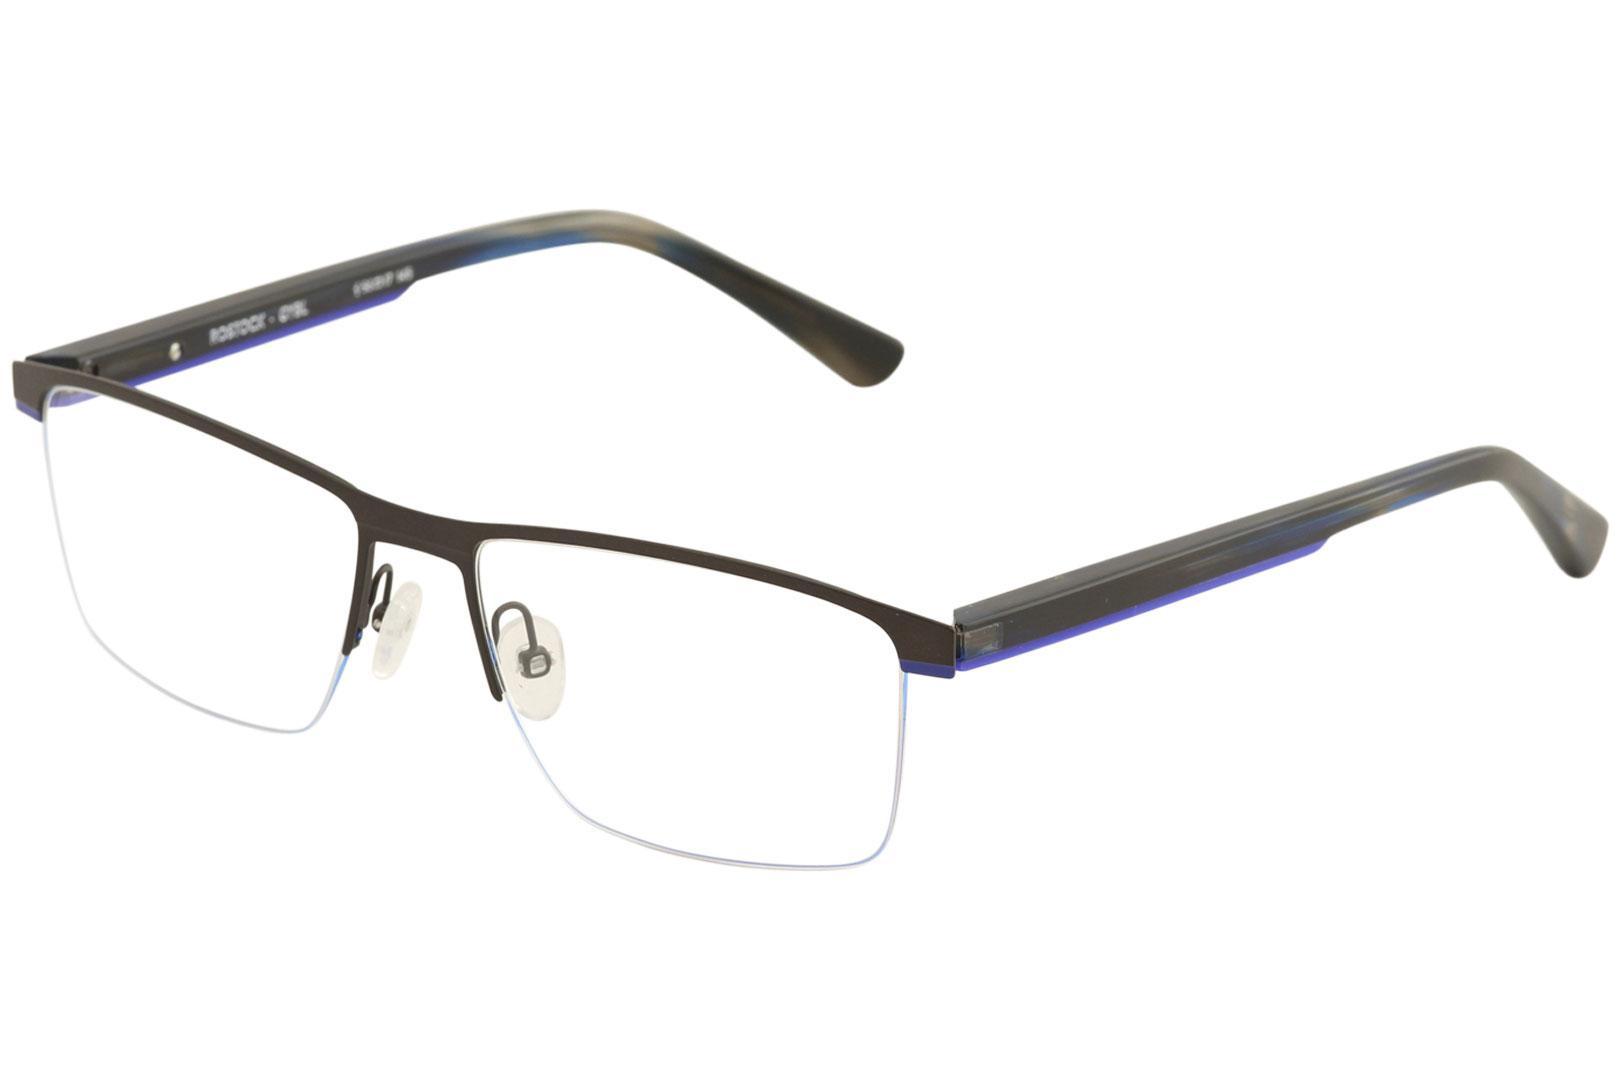 Image of Etnia Barcelona Men's Eyeglasses Rostock Full Rim Optical Frame - Grey/Blue   GYBL - Lens 56 Bridge 17 Temple 145mm